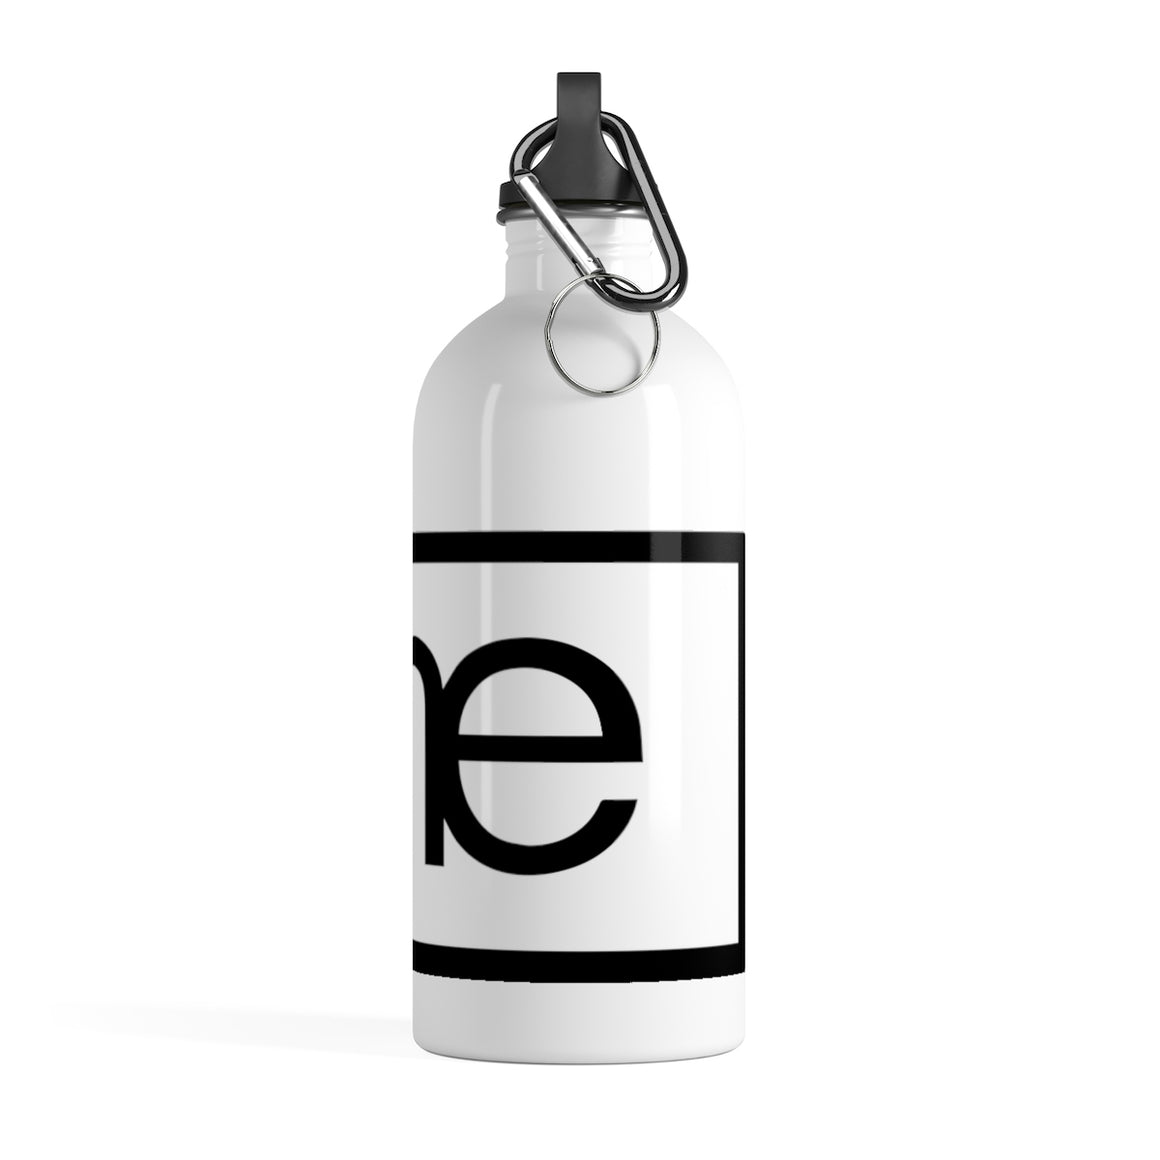 ONE Branded Stainless Steel Water Bottle